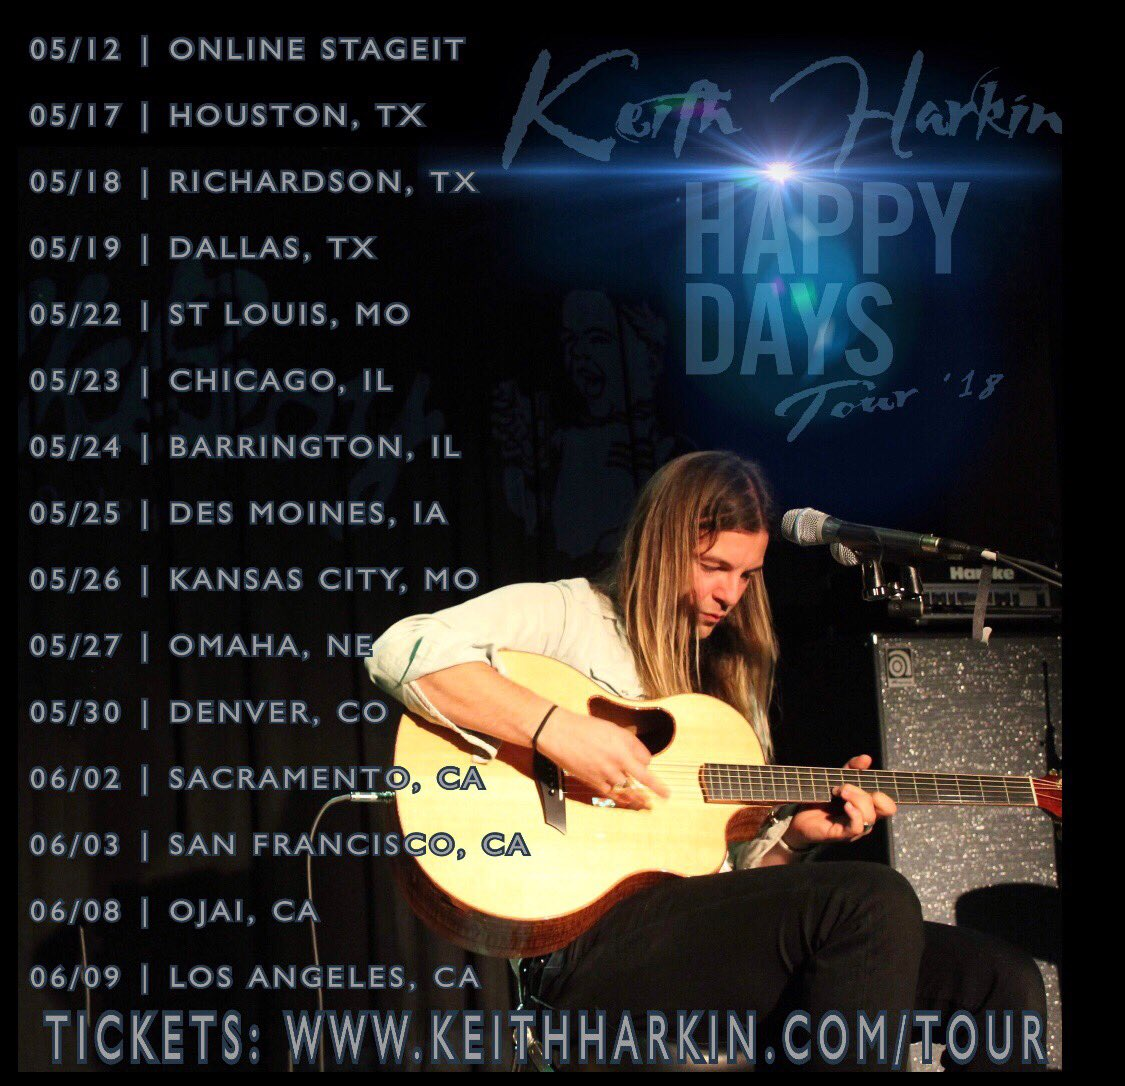 Andrea motturi on twitter this keithharkins happy days keithharkins happy days tour happening get your vip meet greet or general admission tickets now at httpstkdeobcoswi m4hsunfo